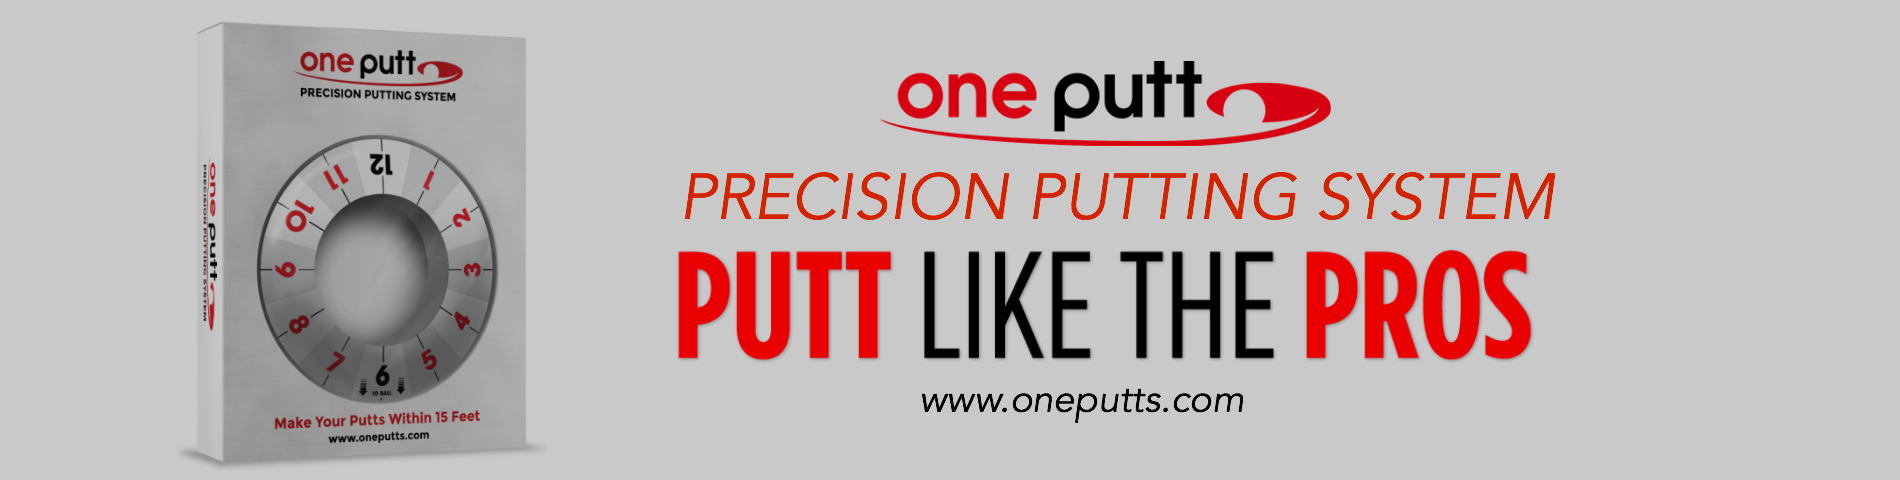 One Putts